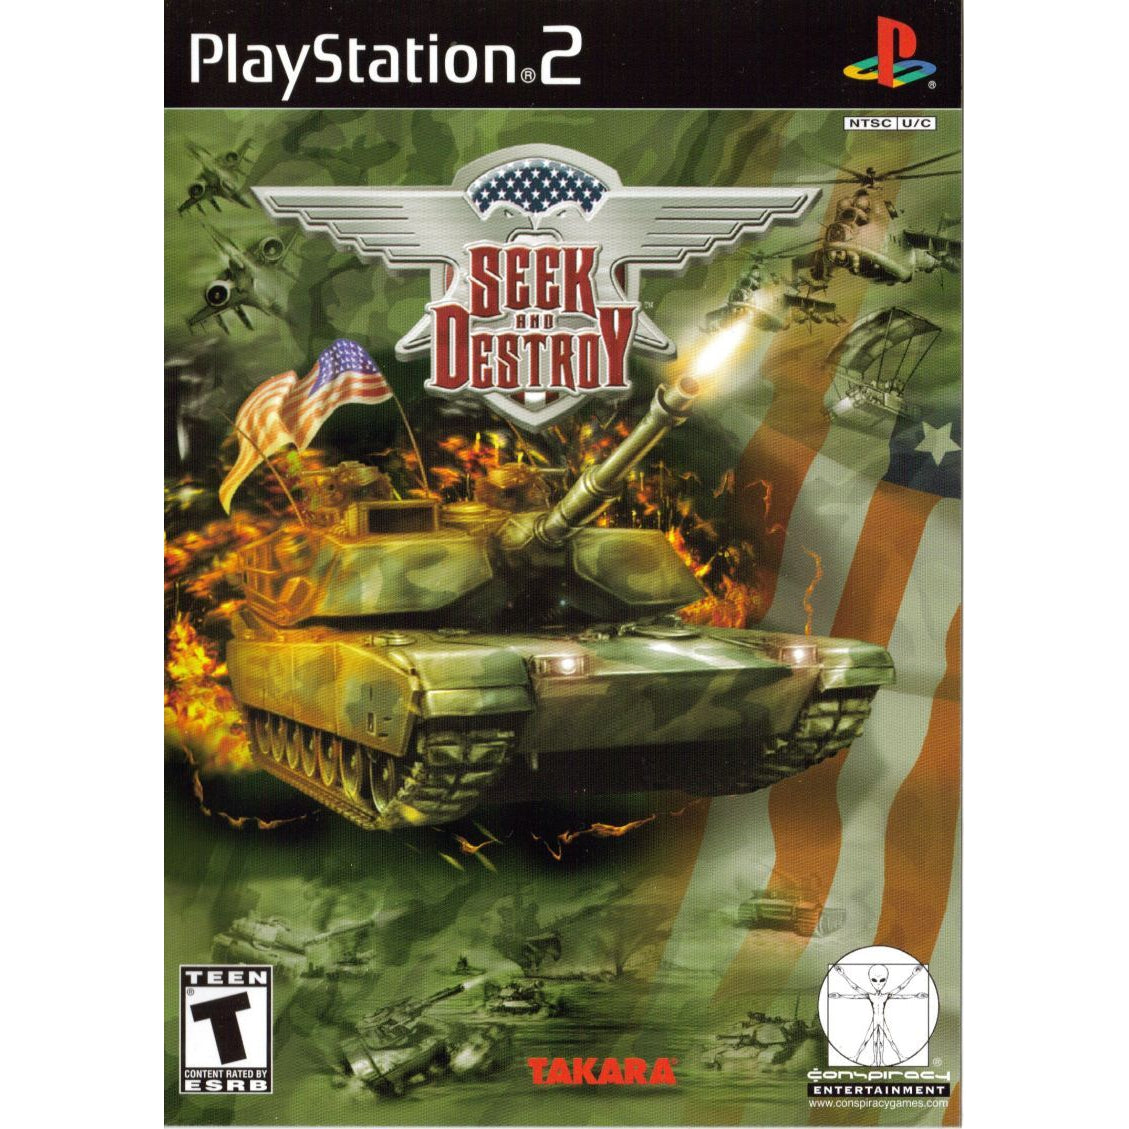 Seek and Destroy - PlayStation 2 (PS2) Game Complete - YourGamingShop.com - Buy, Sell, Trade Video Games Online. 120 Day Warranty. Satisfaction Guaranteed.